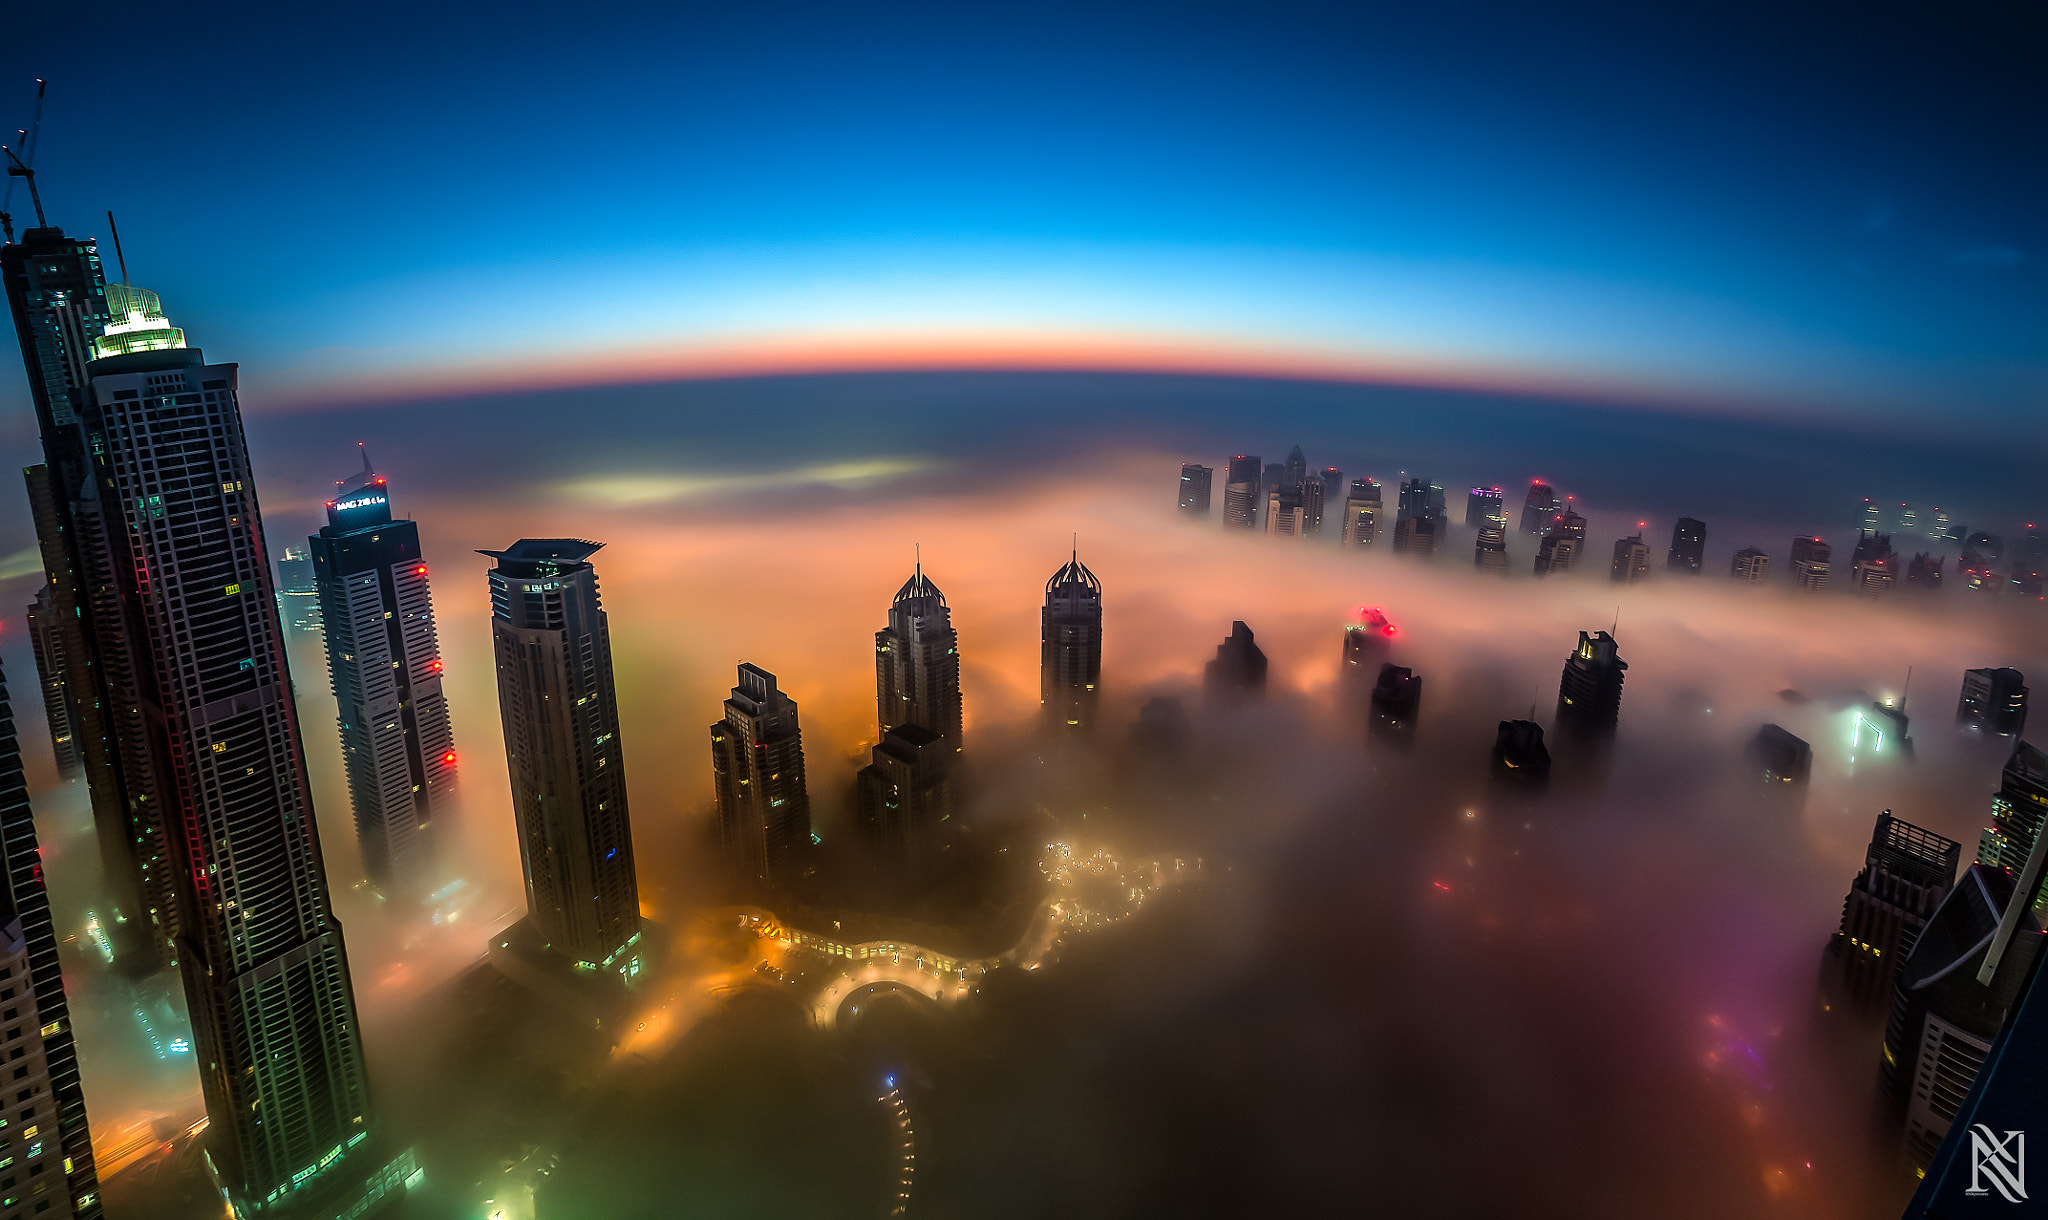 Photograph Urban Cotton Candy by Karim Nafatni on 500px